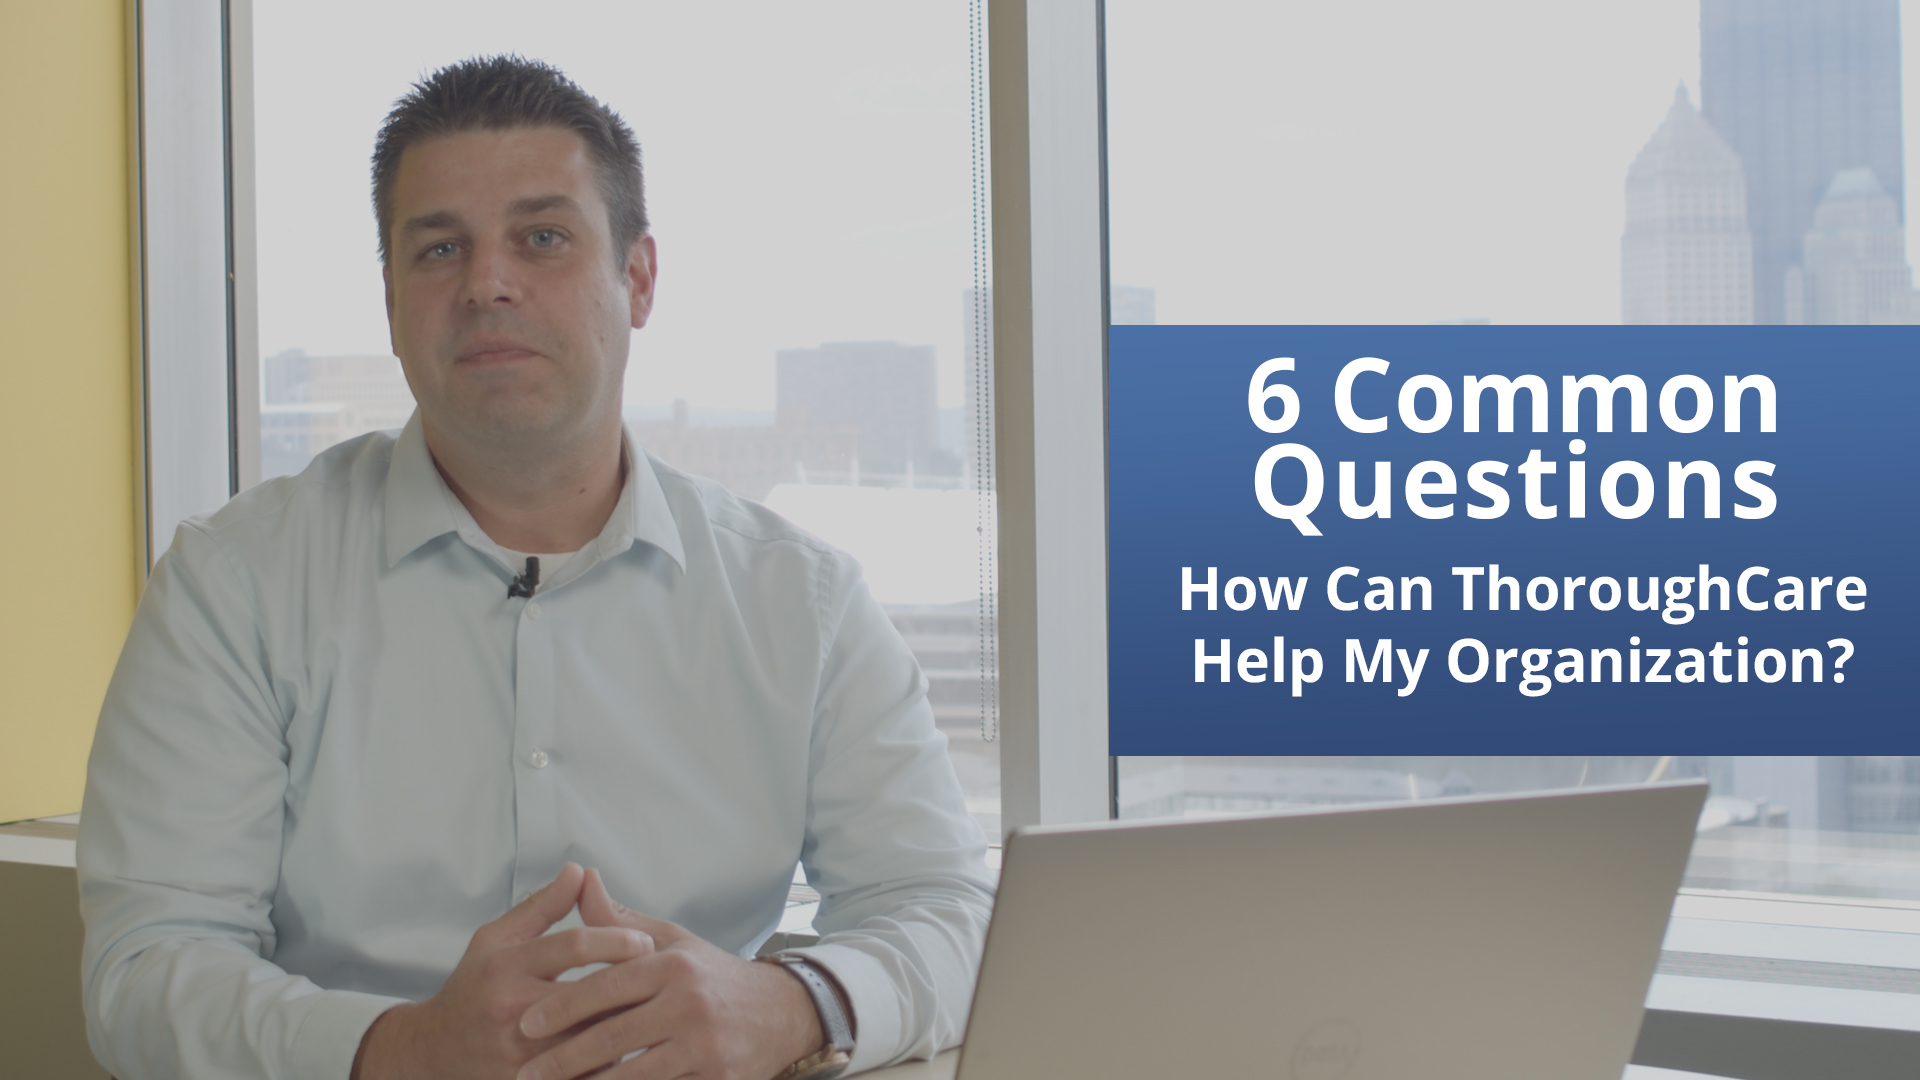 Six Common Questions for ThoroughCare (80% Video)